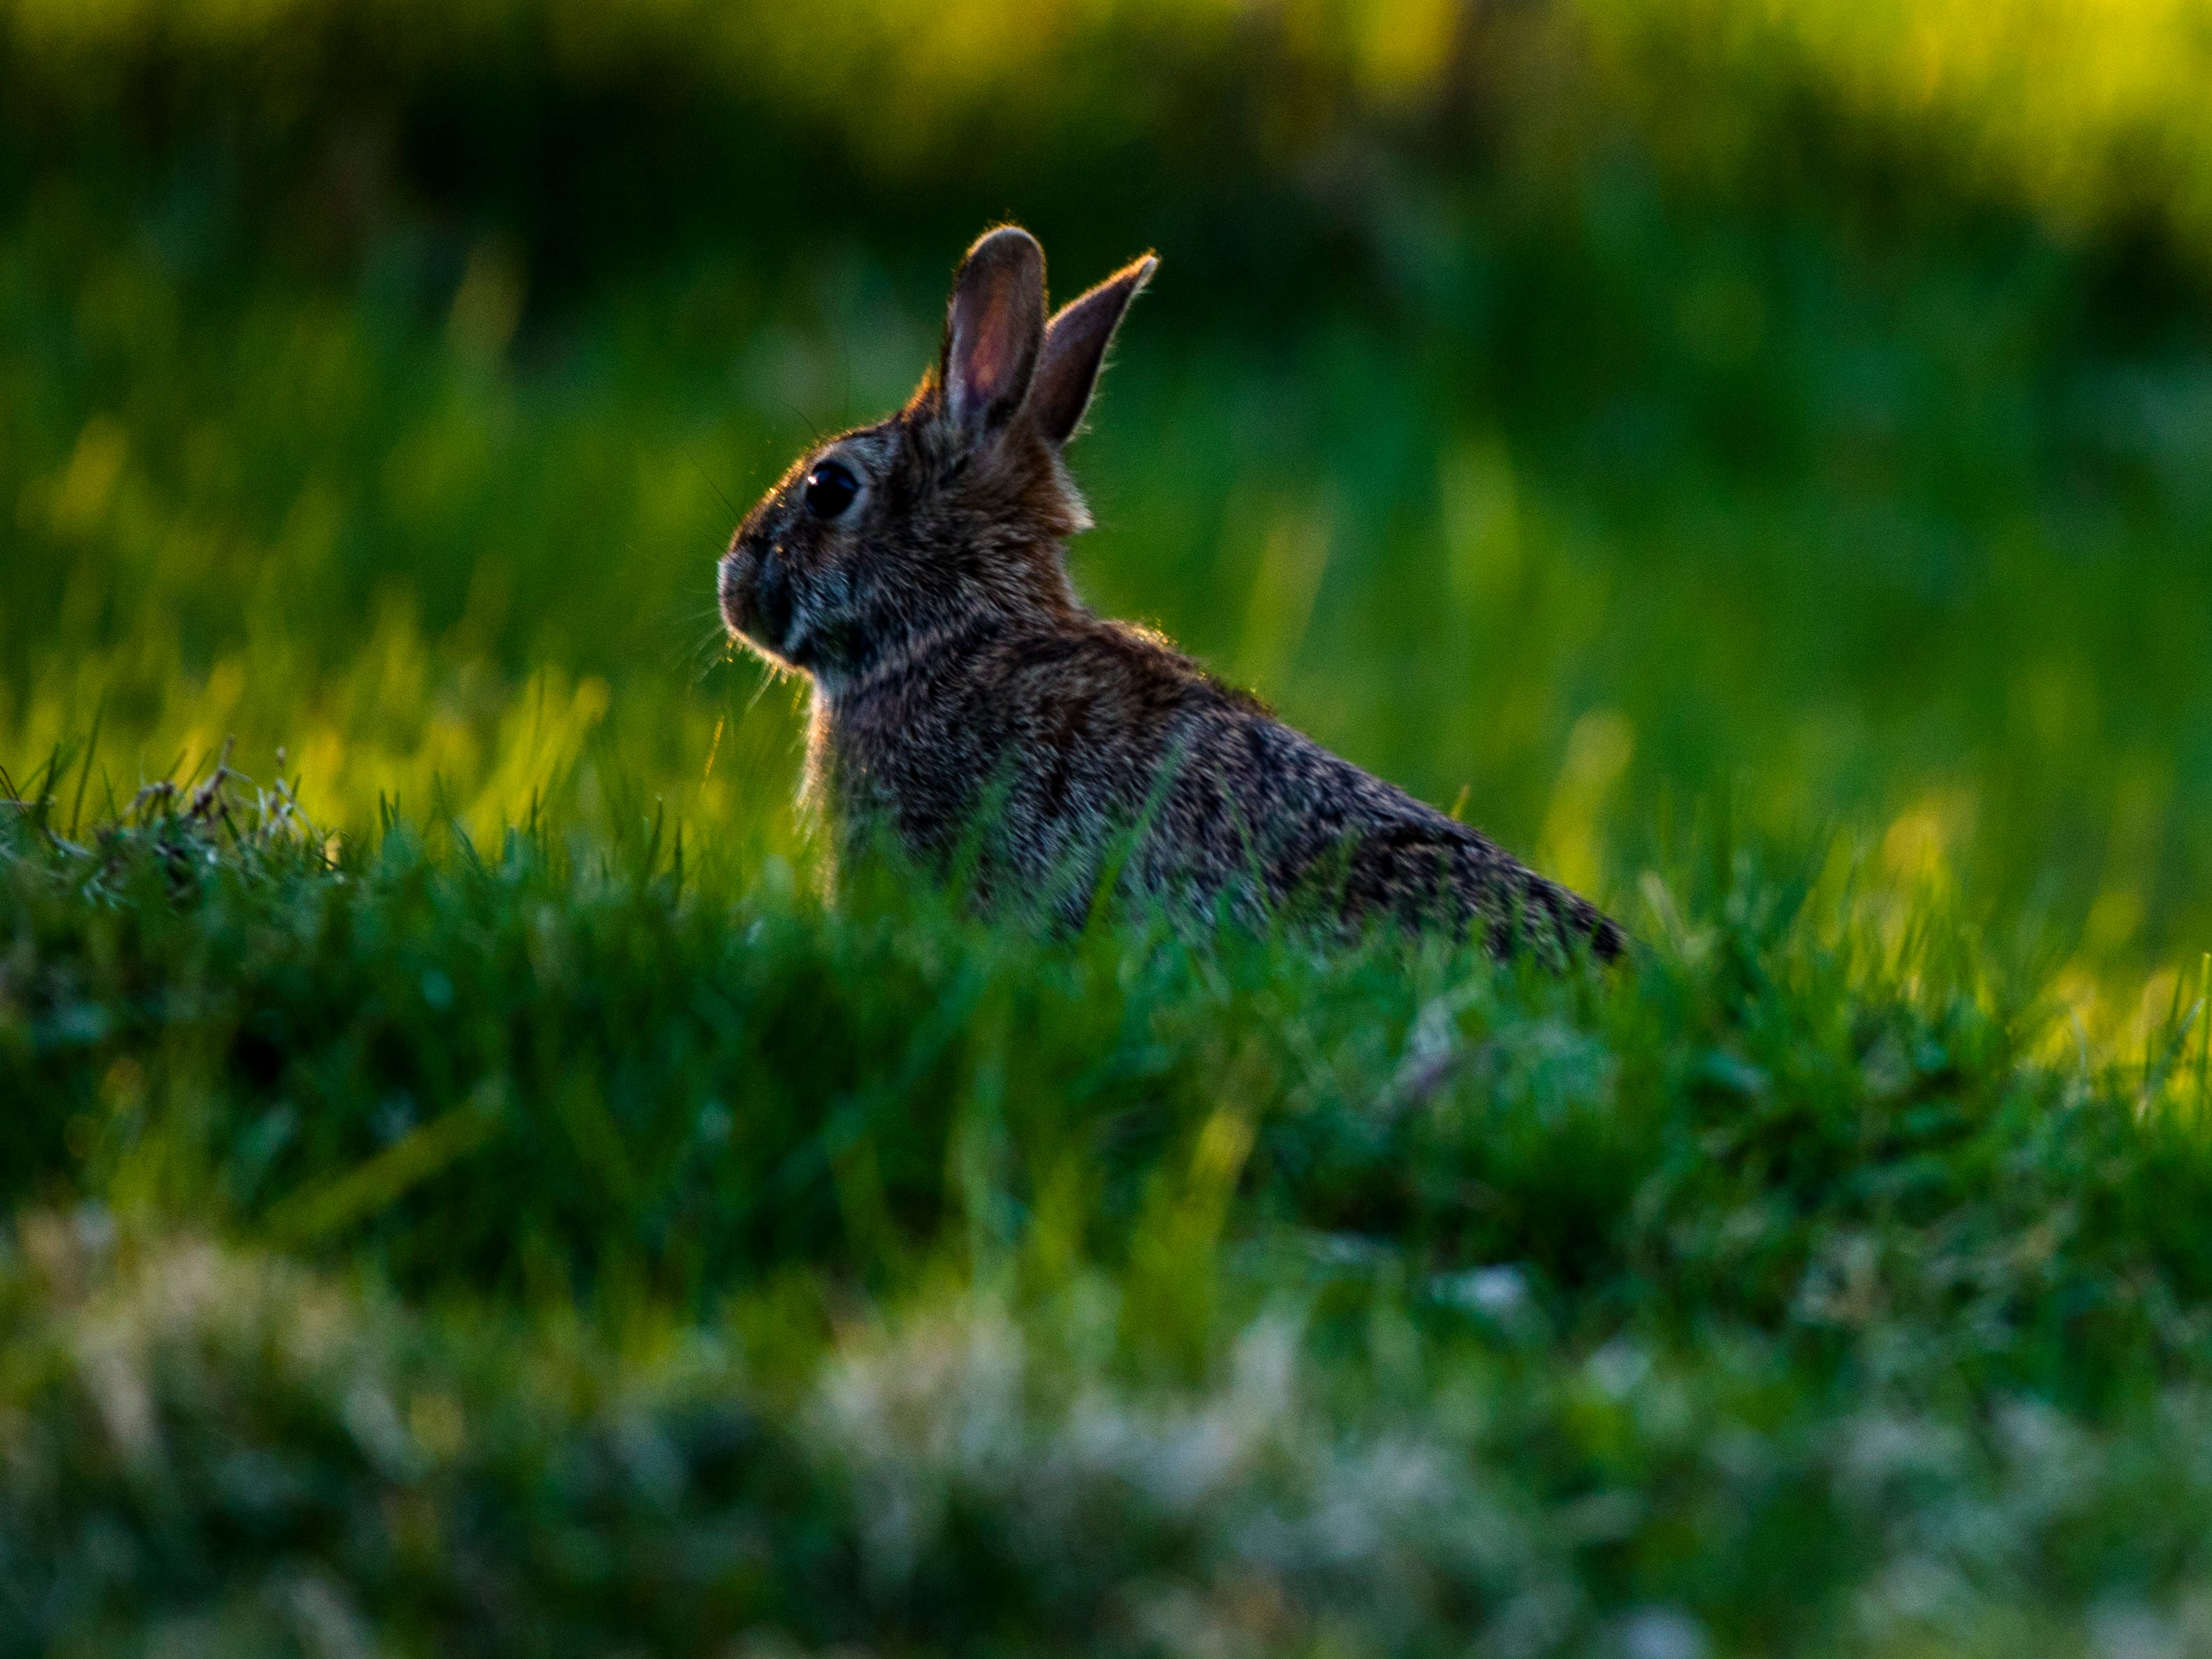 A rabbit sits in the back yard in a residential neighborhood in West Price Hill on Tuesday, April 9, 2019.